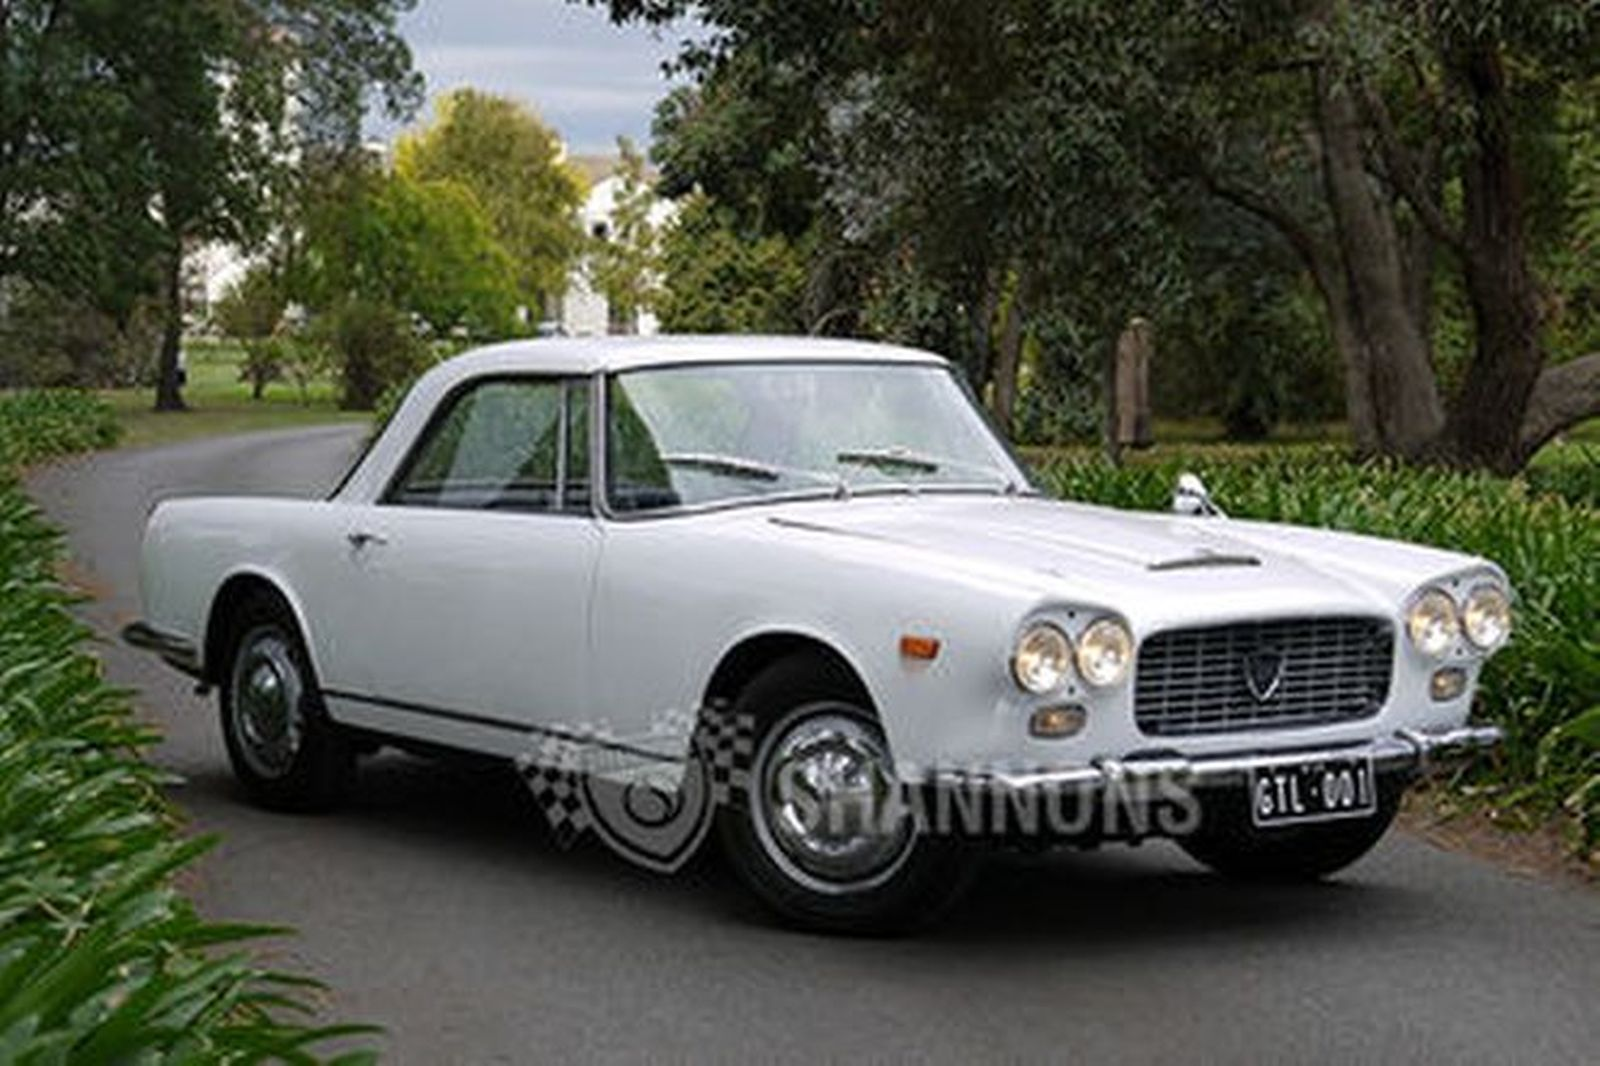 https://www.shannons.com.au/library/images/auctions/F8J3Y4H8A4N6X9H1/1600x1066/1963-lancia-flaminia-gtl-3c-touring-28l-coupe-lhd.jpg